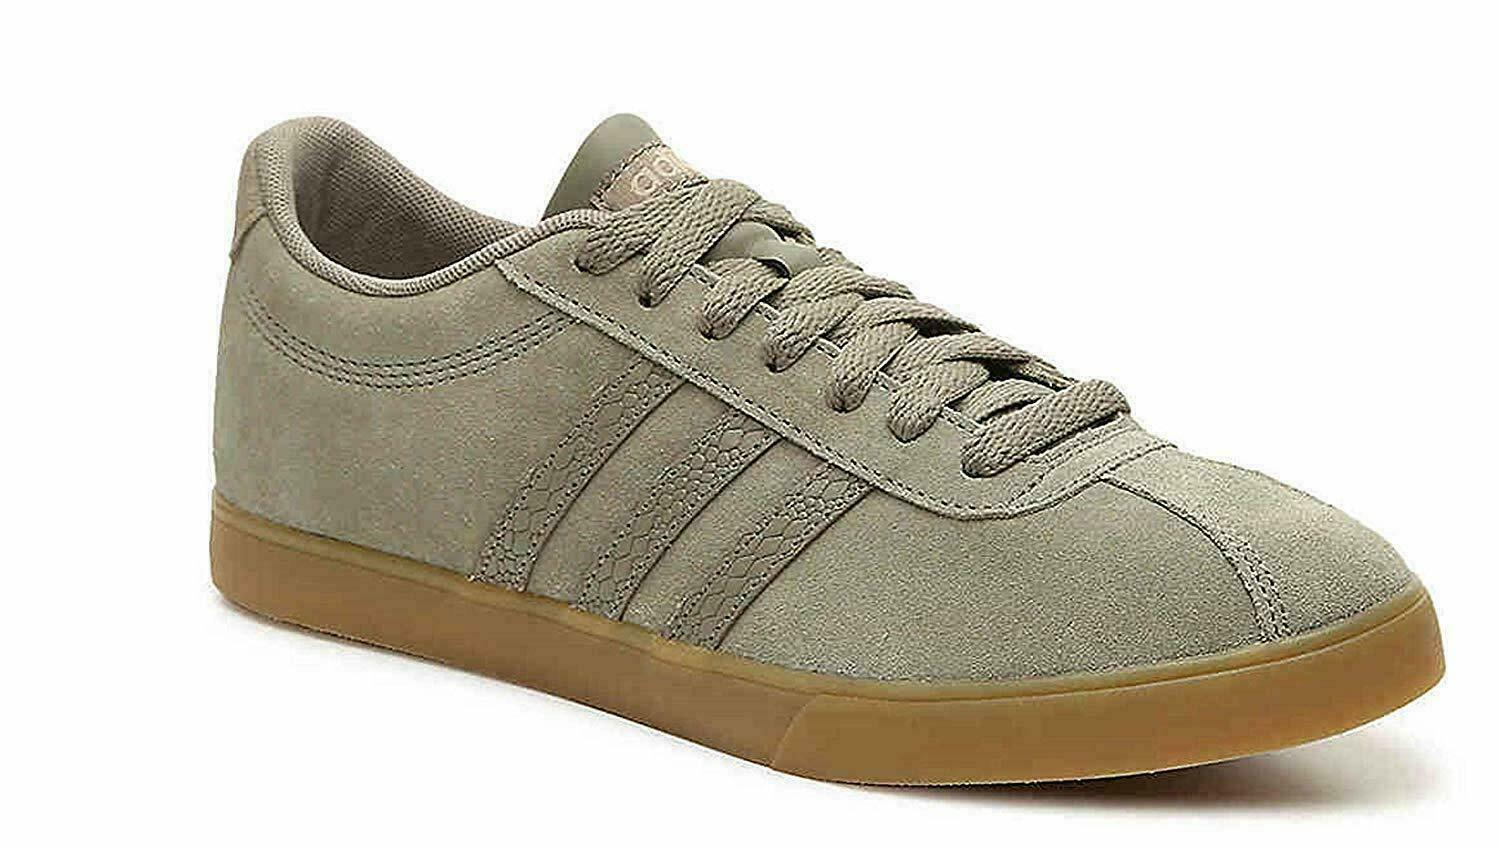 Adidas Courtset Women's Tennis Shoes Trace Cargo/Olive Green/ Cyber Mint F35224